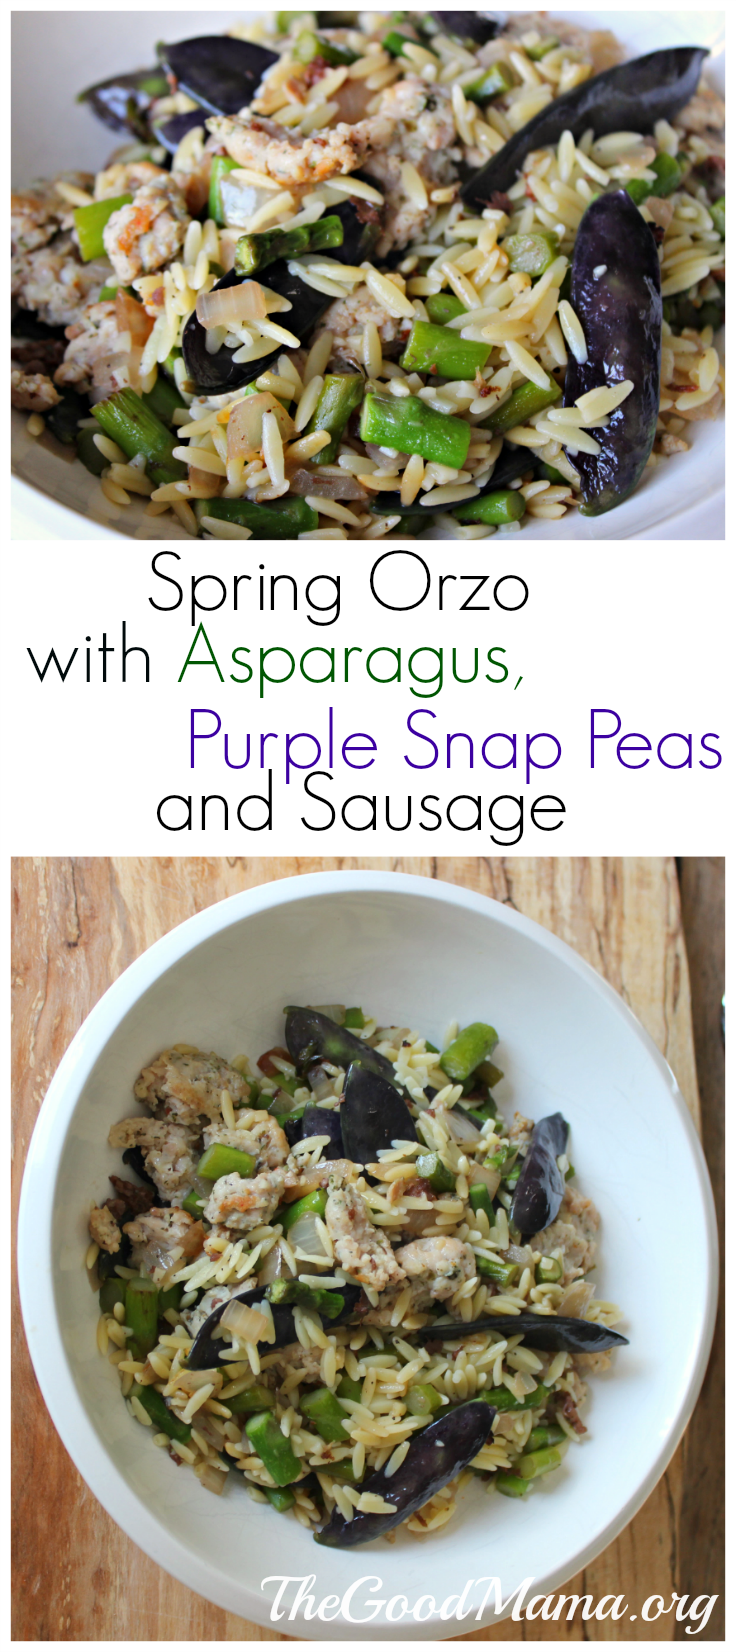 Spring Orzo with Asparagus, Purple Snap Peas and Sausage